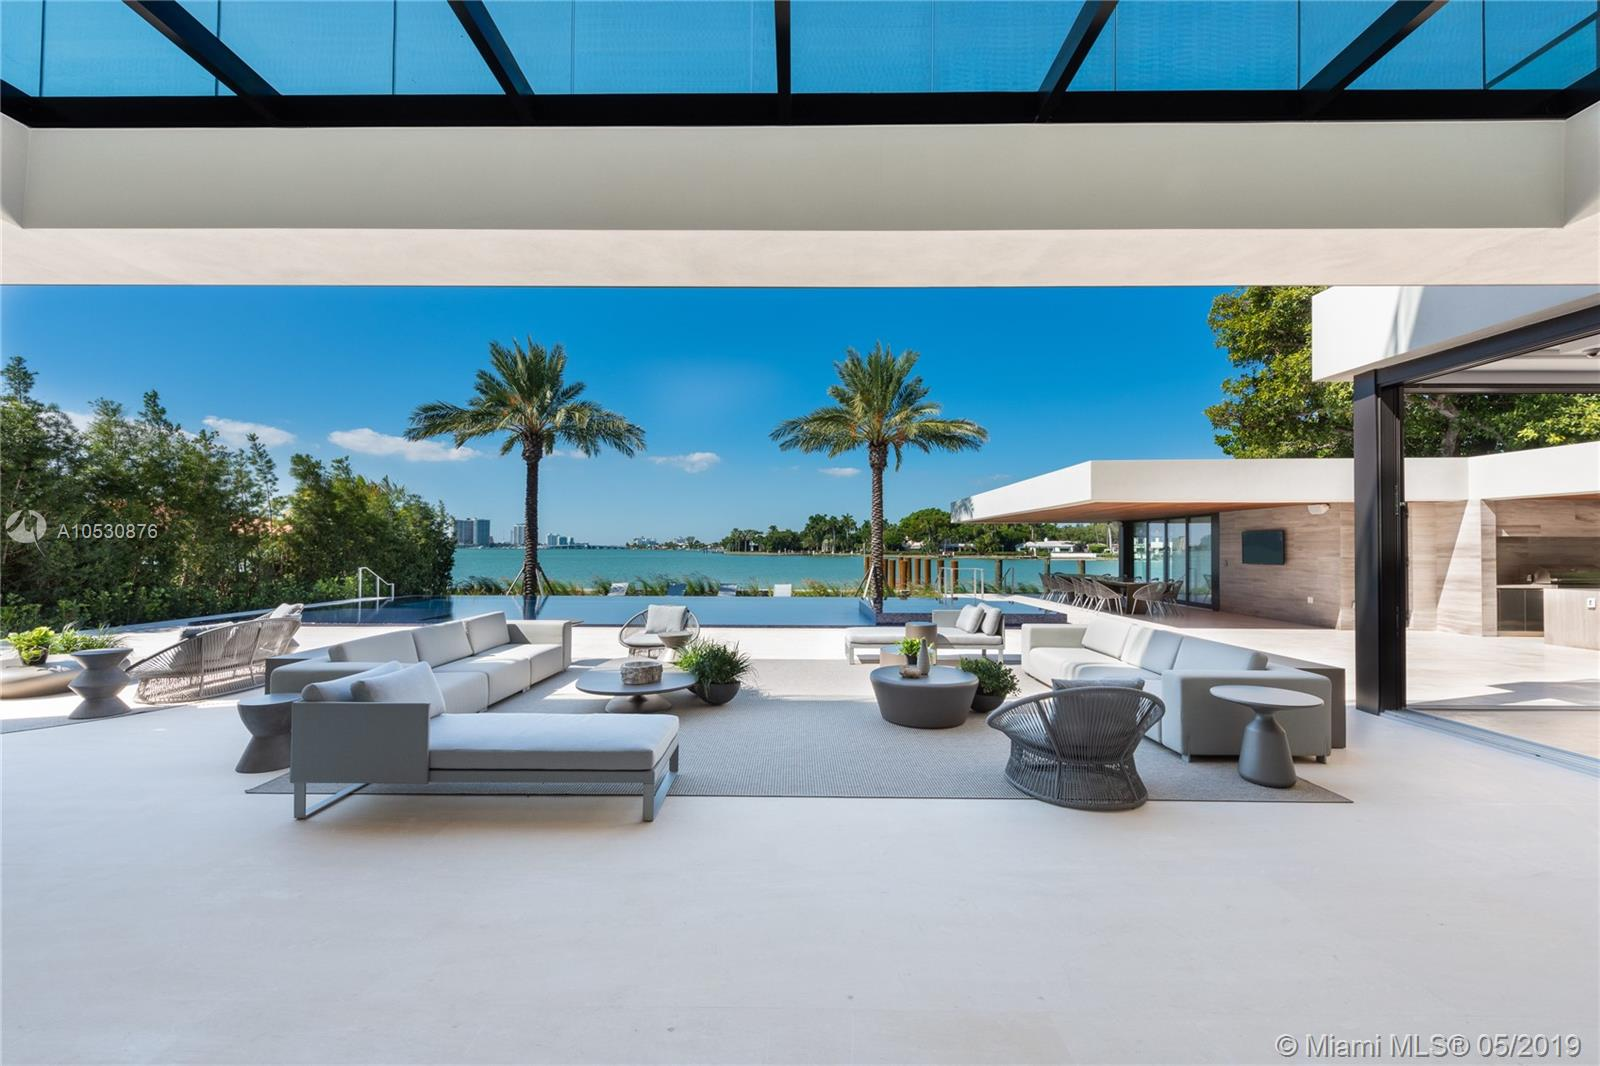 6360 Bay rd- miami-beach-fl-33141-a10530876-Pic10